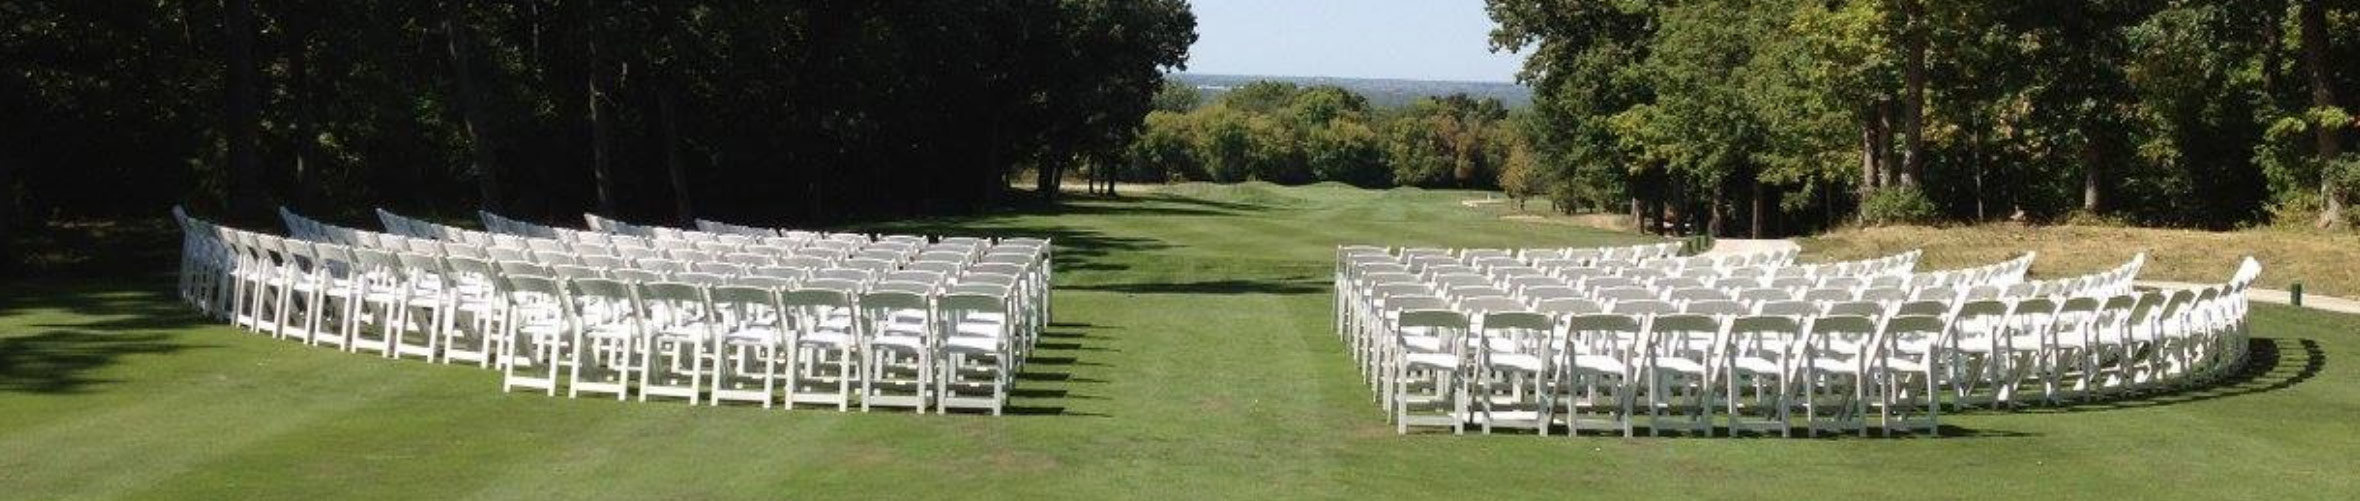 Rental Chairs And Tables Table Chair Rentals Wedding Rentals Corporate Rentals